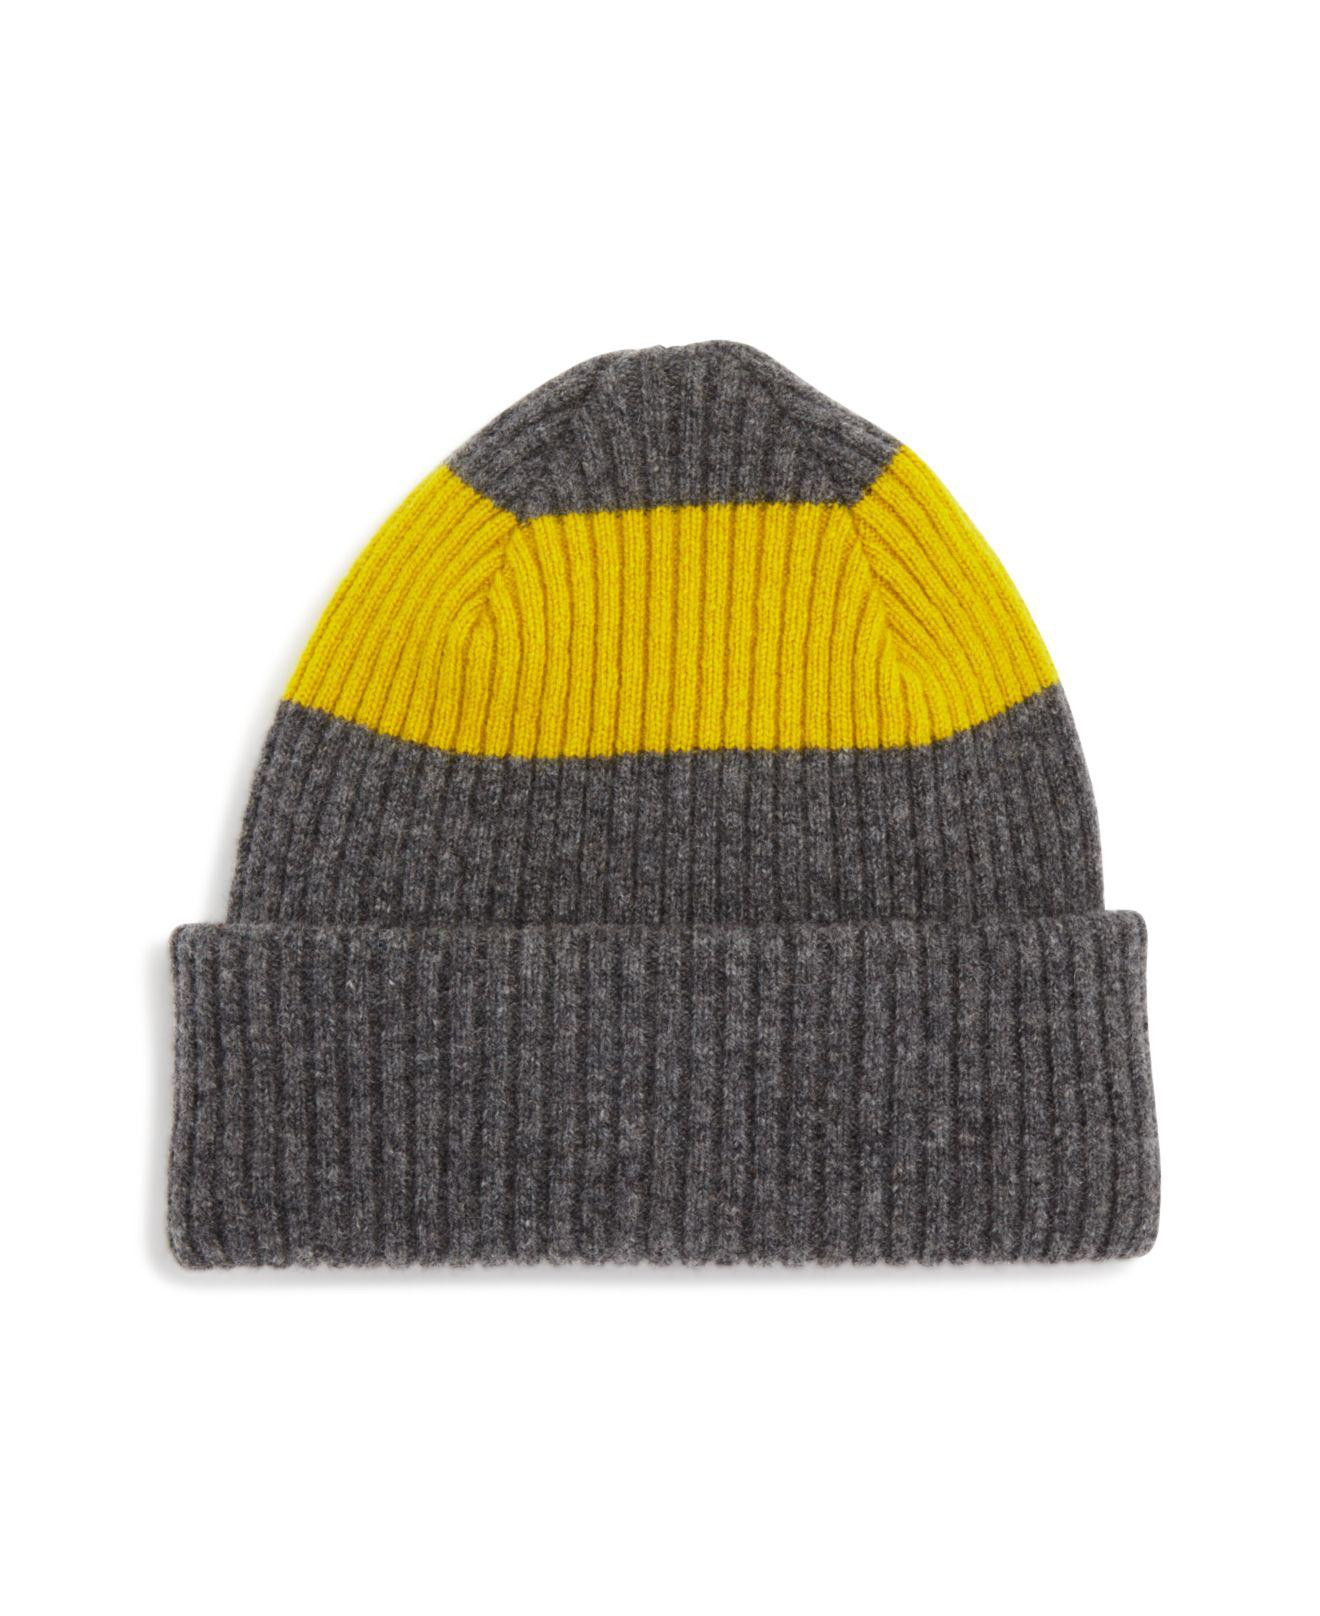 9a0be111e83 Paul Smith Color-block Lambswool Beanie Hat for Men - Lyst